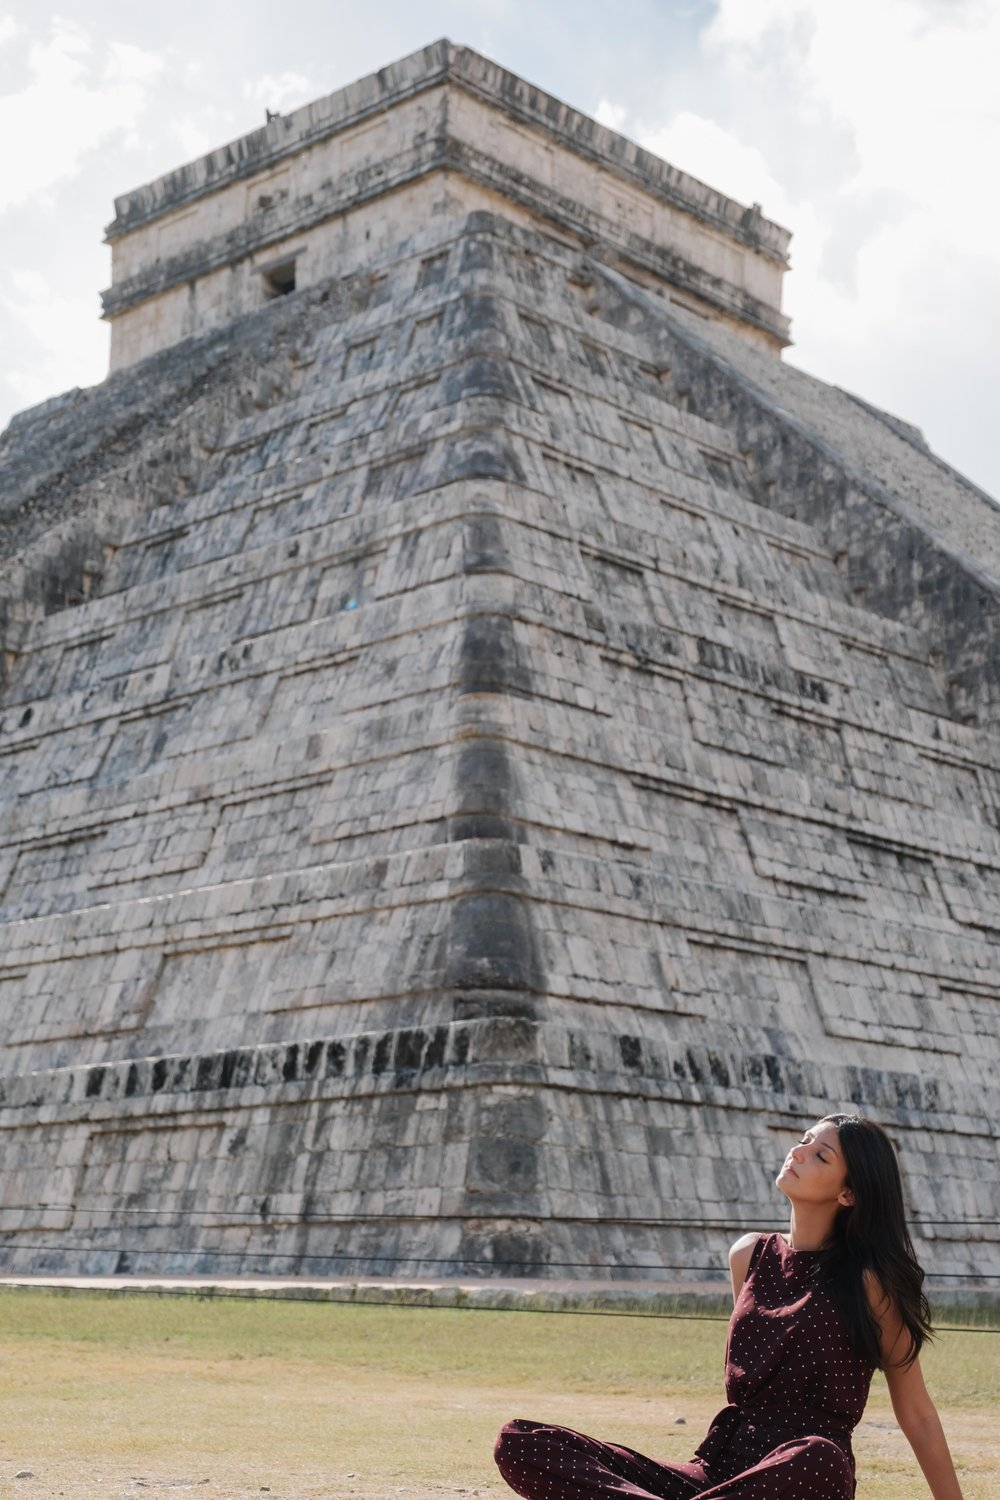 CHICHEN ITZA MEXICO - VIA TOLILA